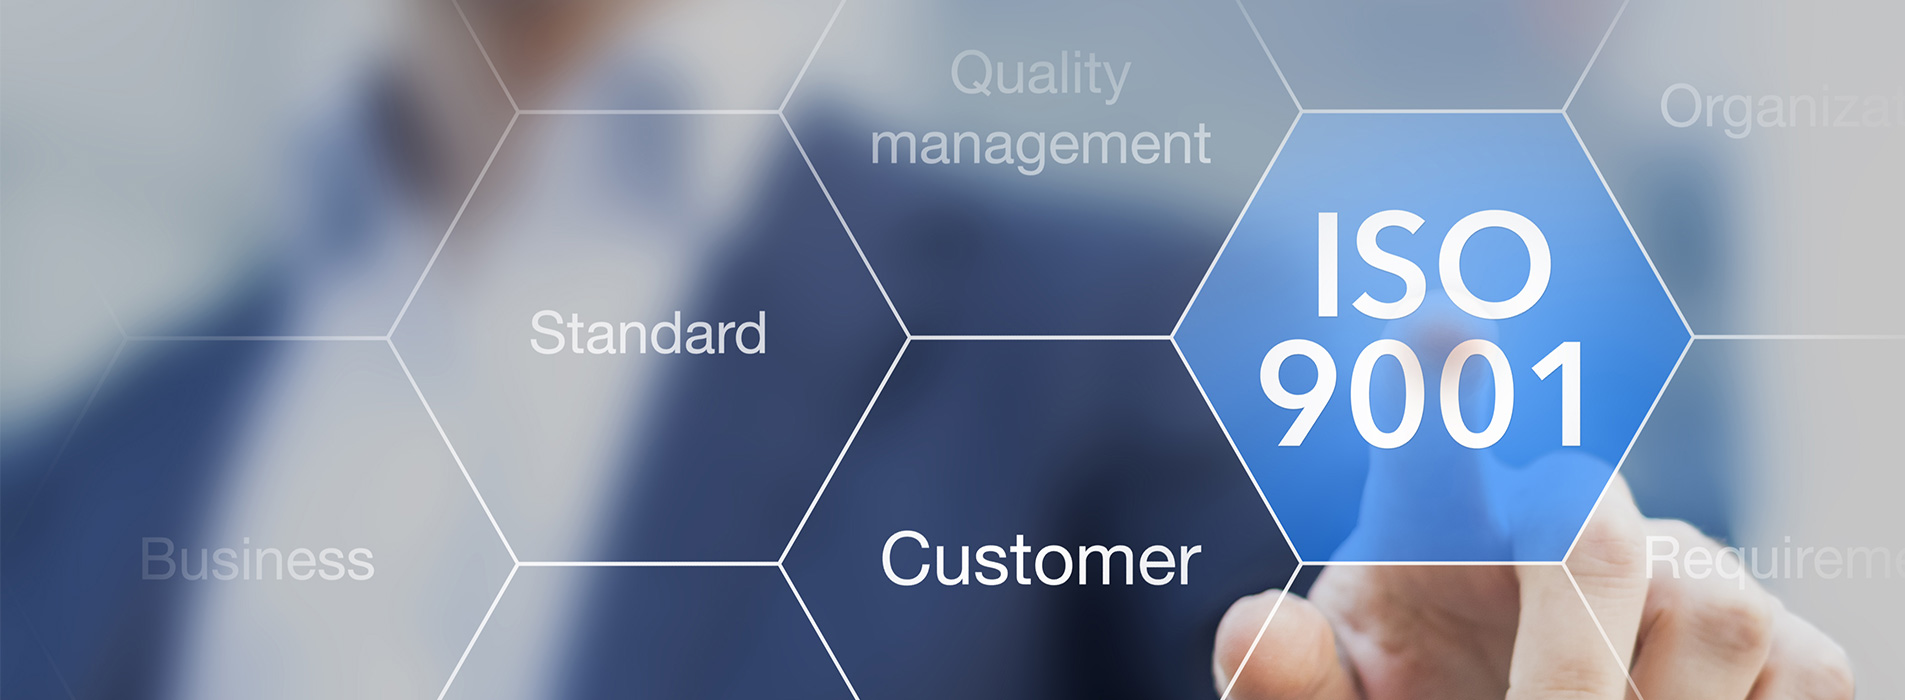 Invest in the experts: Why outsourcing could be the best QA decision for your business